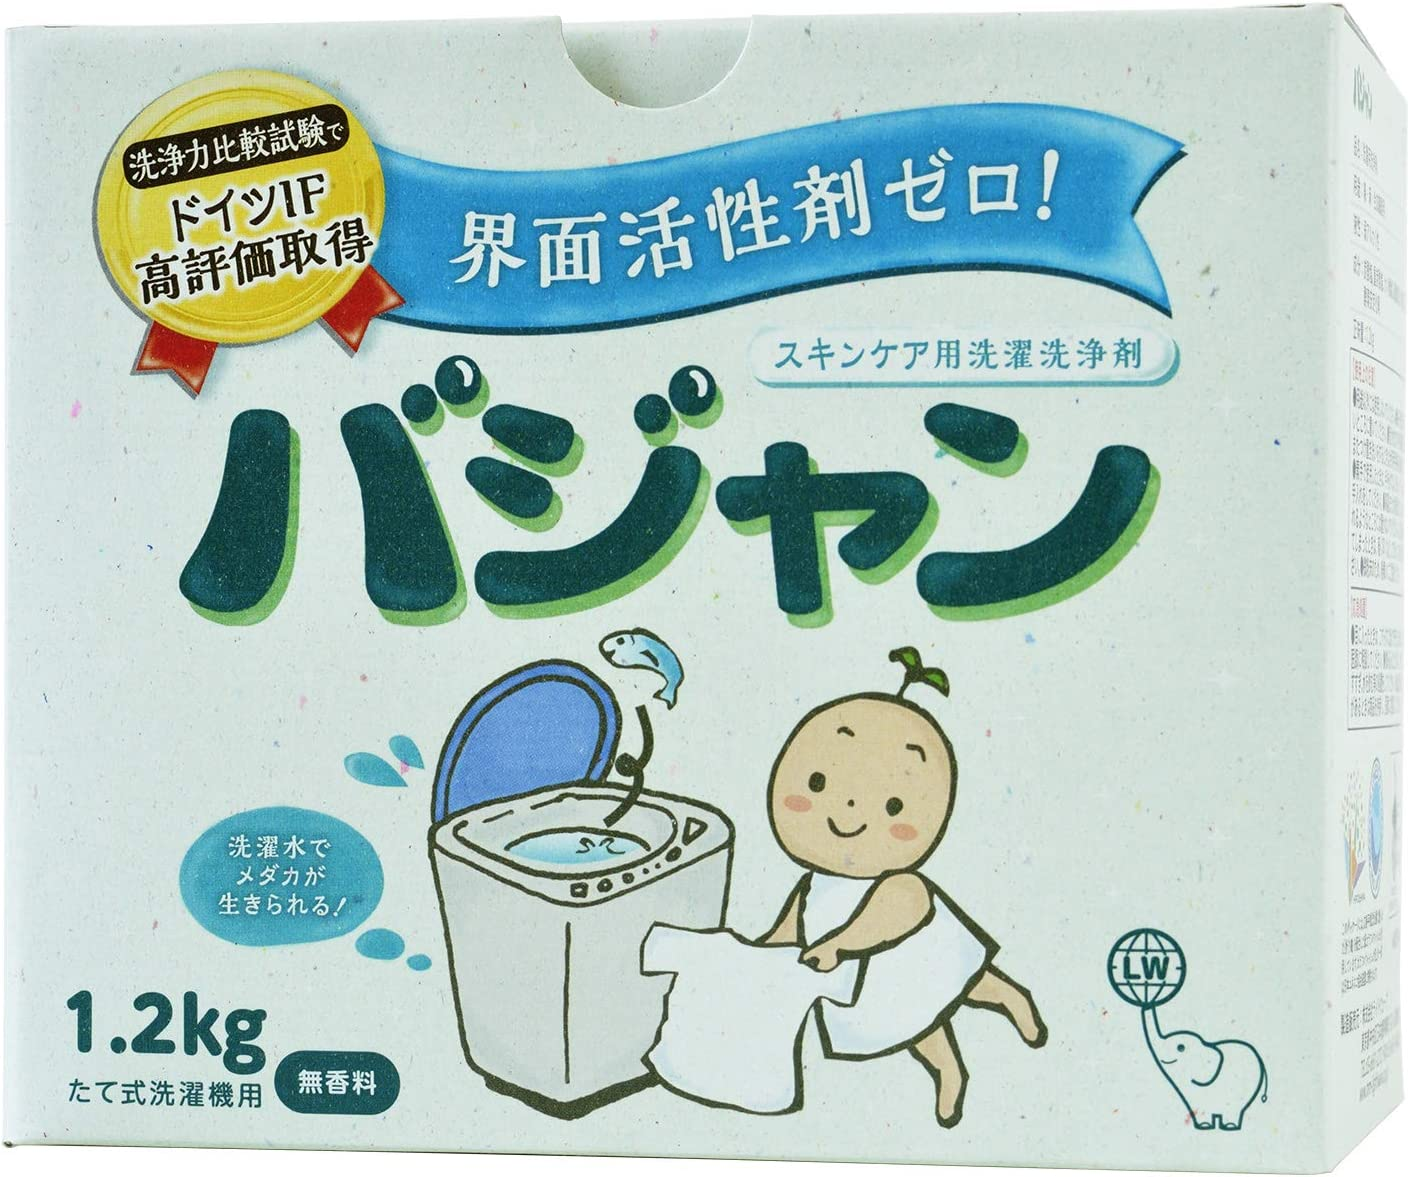 Rare Extremely Earth Outlet ☆ Free Shipping FriendlySkin Care Laundry from BHAJAN Detergent